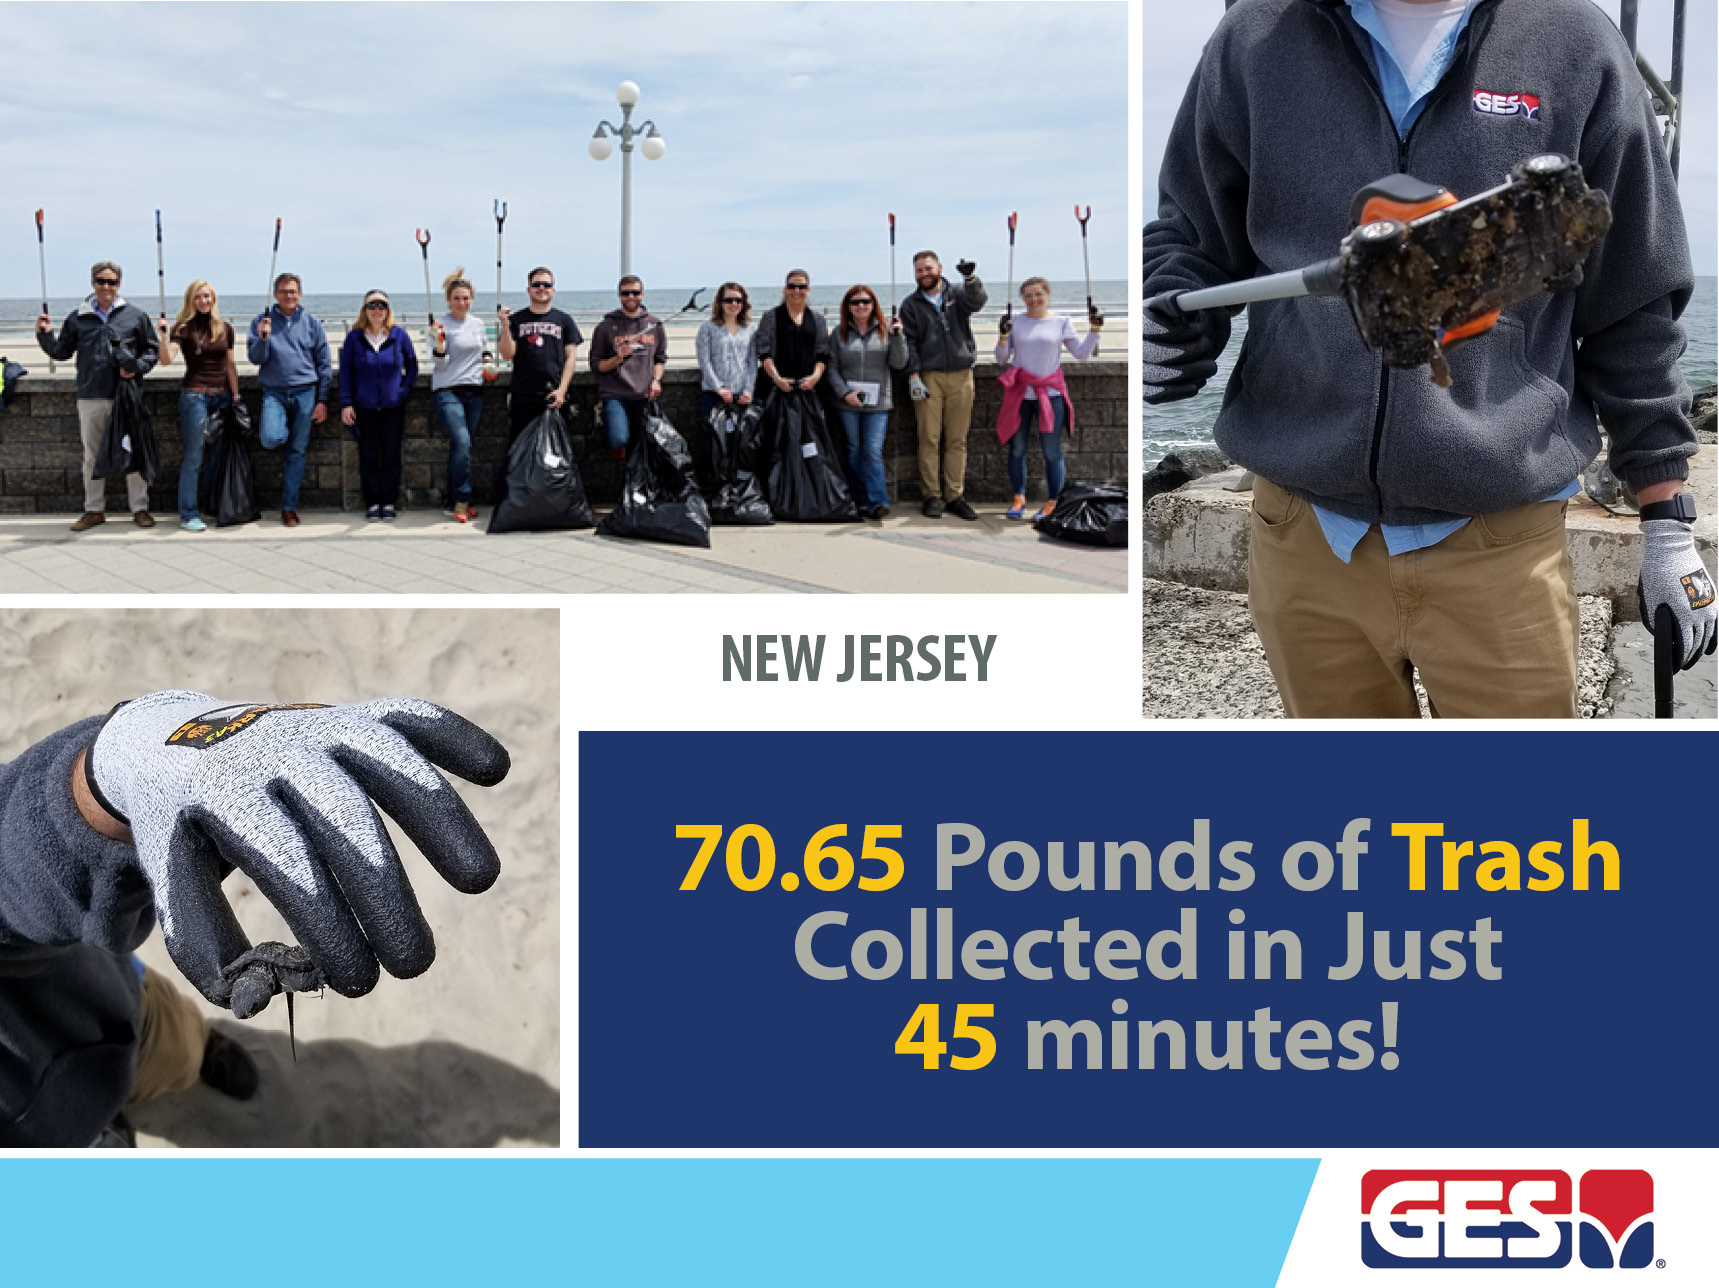 Beach Cleanup, snapping turtle, rescue, earth day, trash pick up